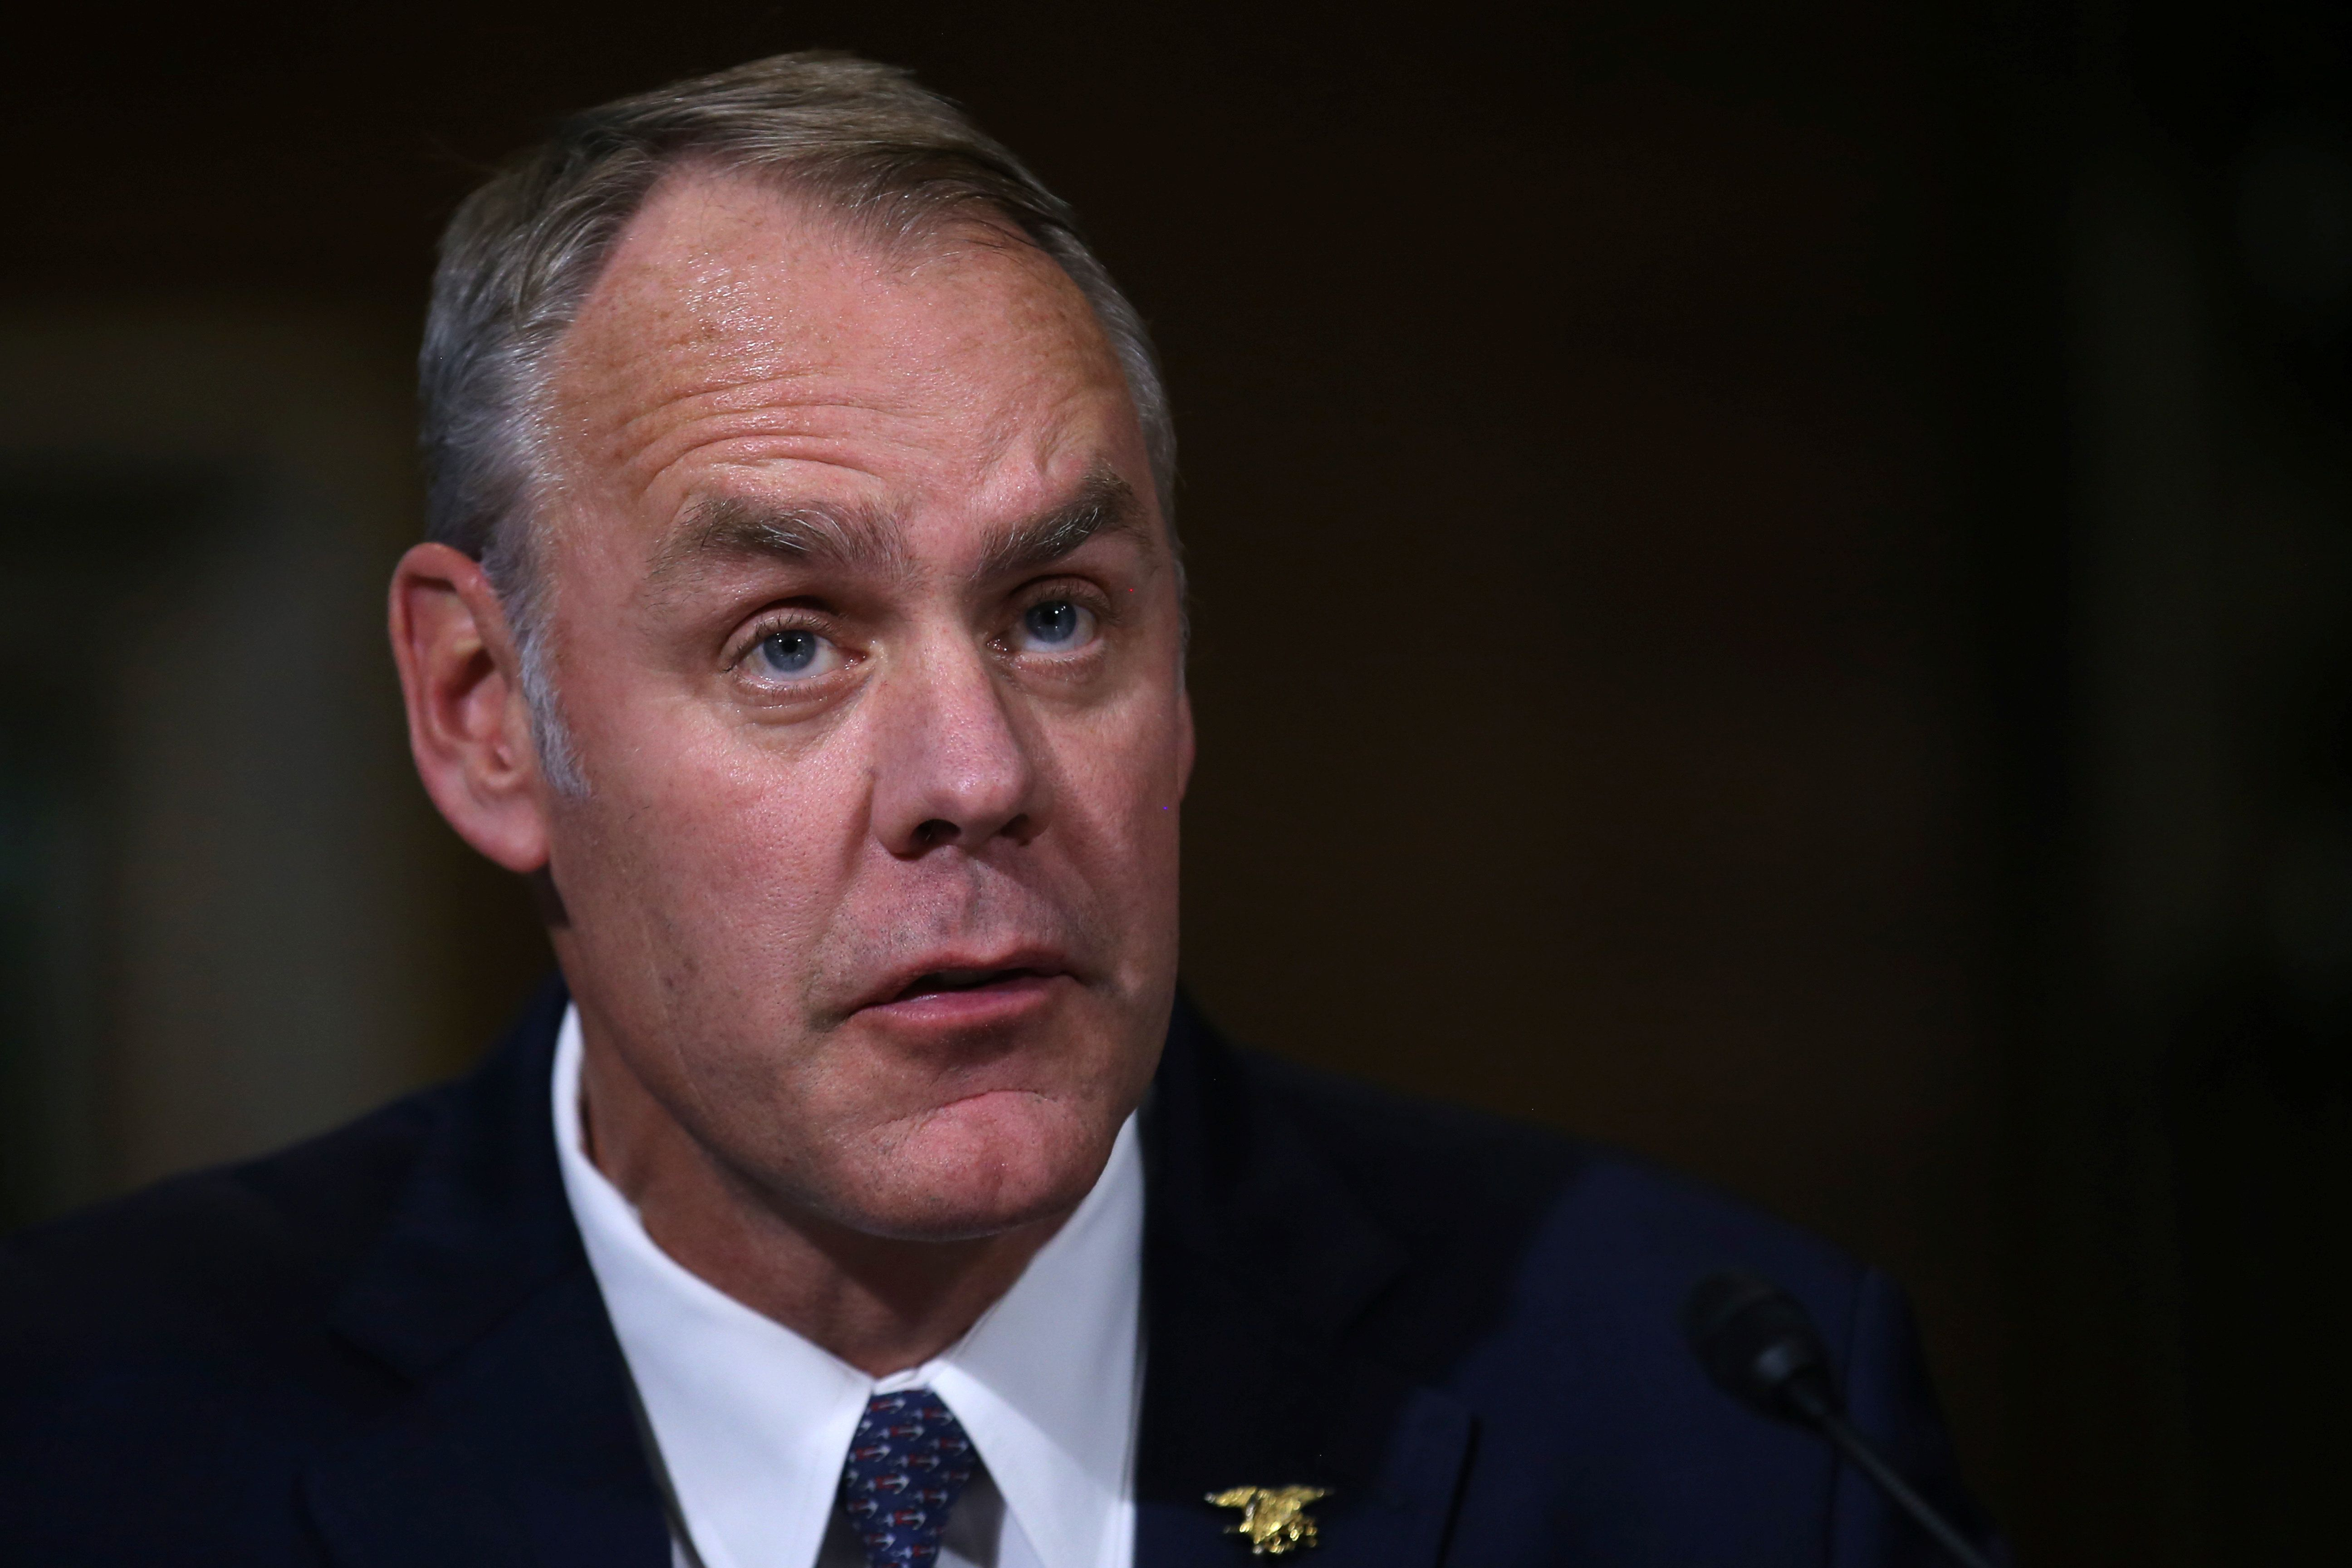 U.S. Representative Ryan Zinke (R-MT), a former Navy SEAL commander, testifies before a Senate Energy and Natural Resources Committee confirmation hearing on his nomination to be Interior Secretary at Capitol Hill in Washington, U.S., January 17, 2017. REUTERS/Carlos Barria